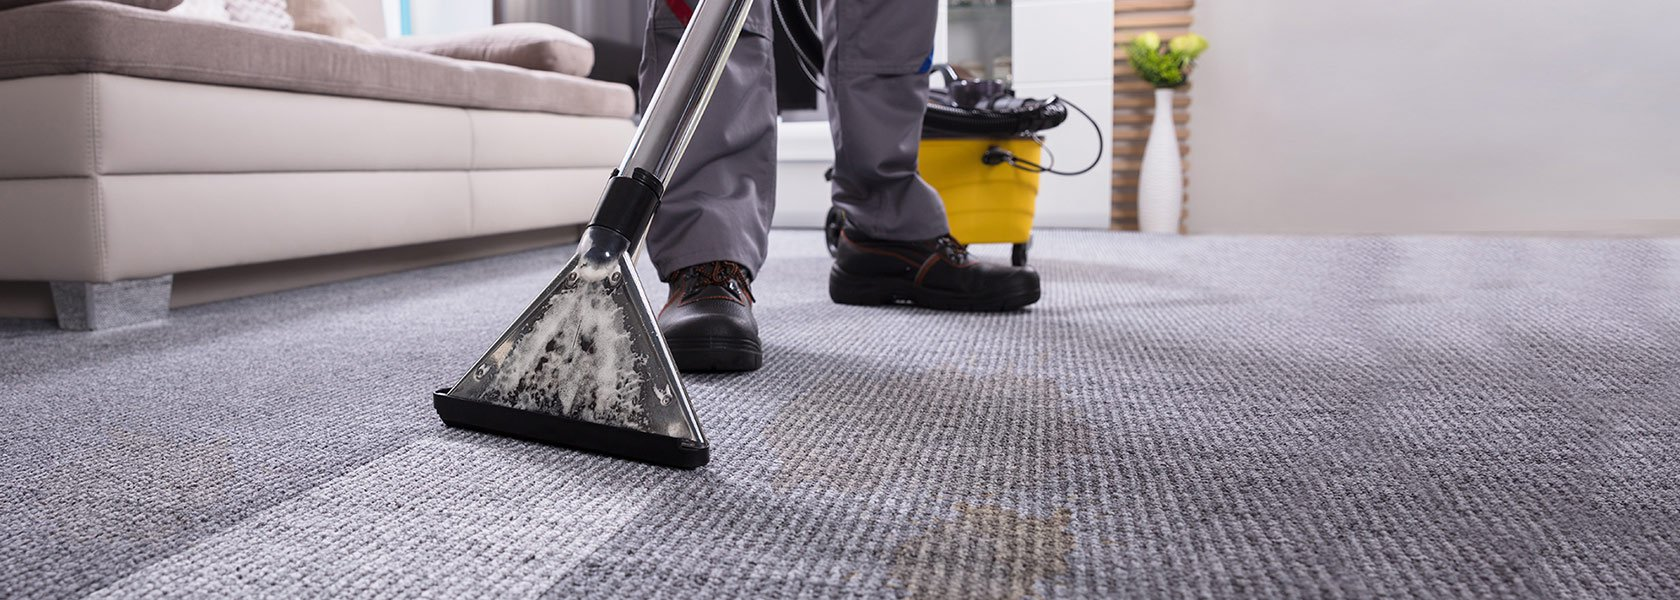 Carpet Cleaning Services - Best carpet & rug cleaning services in Dubai offered by Maids o...